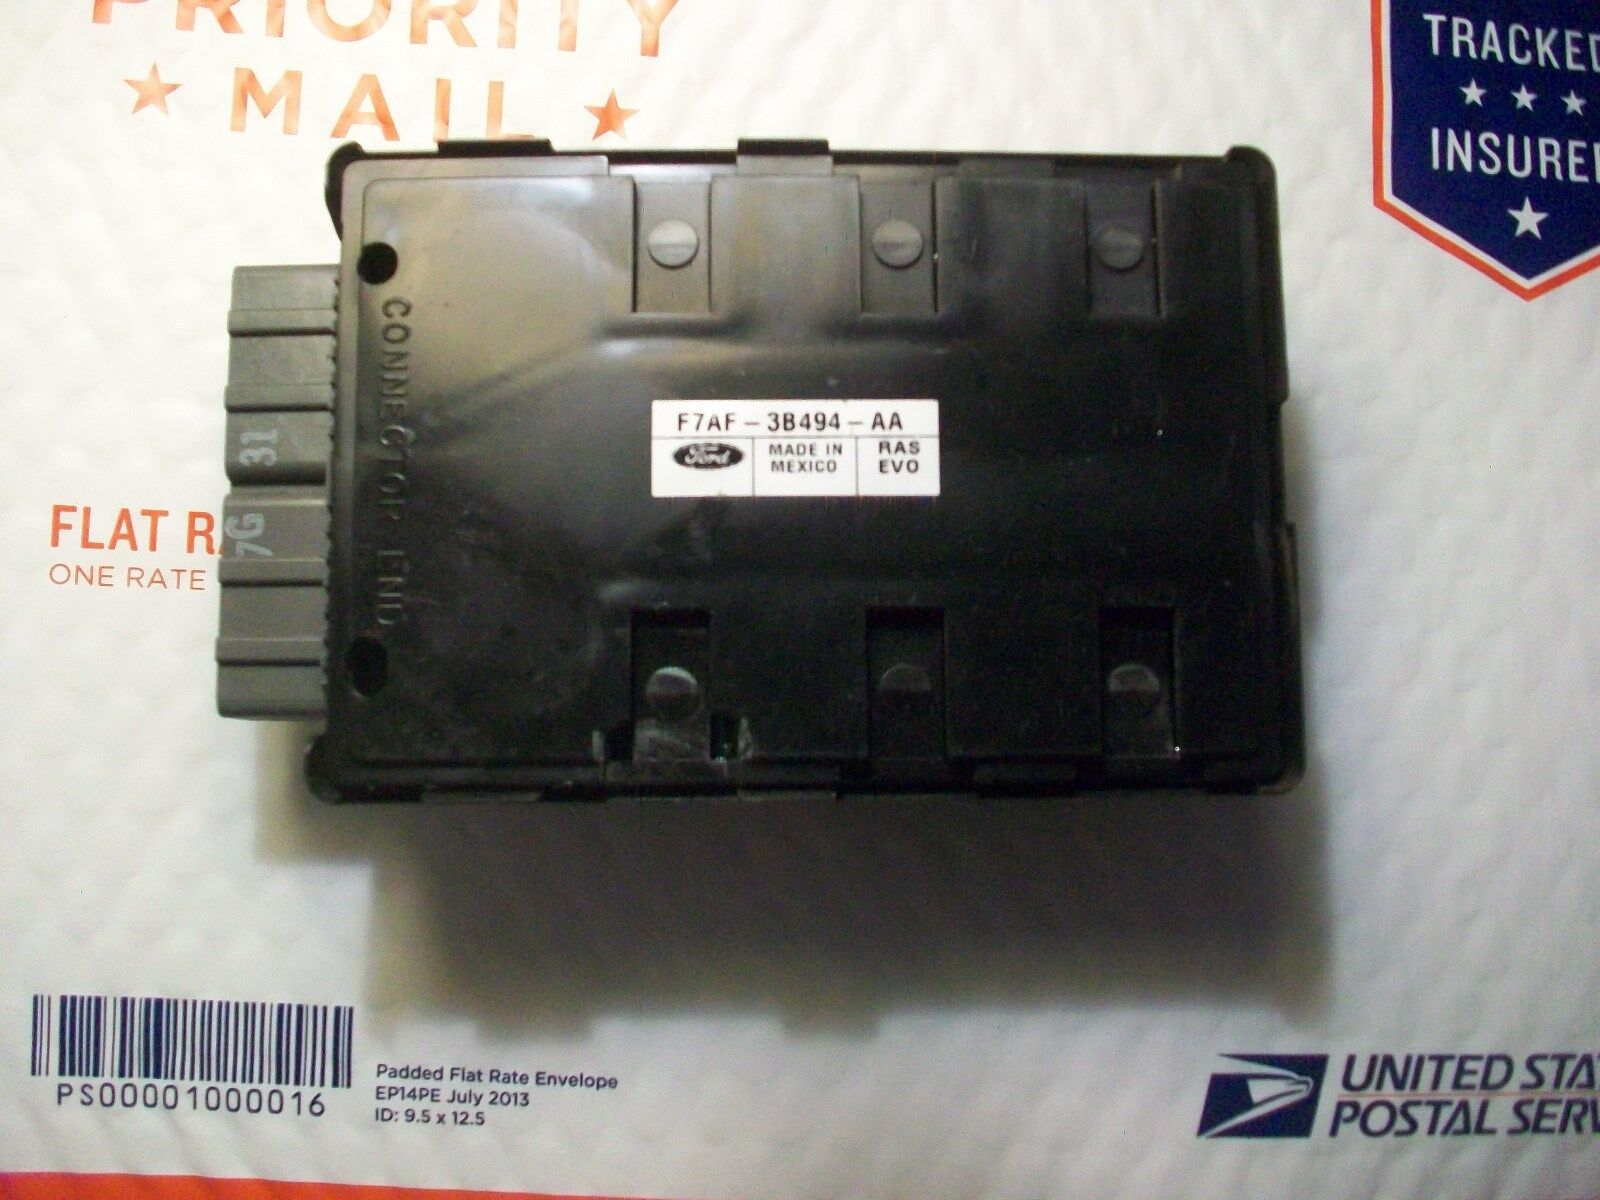 Used Mercury Switches And Controls For Sale Page 44 Monarch Fuse Box Location 1997 Grand Marquis Air Suspension Steering Module F7af 3b494 Aa T626 2